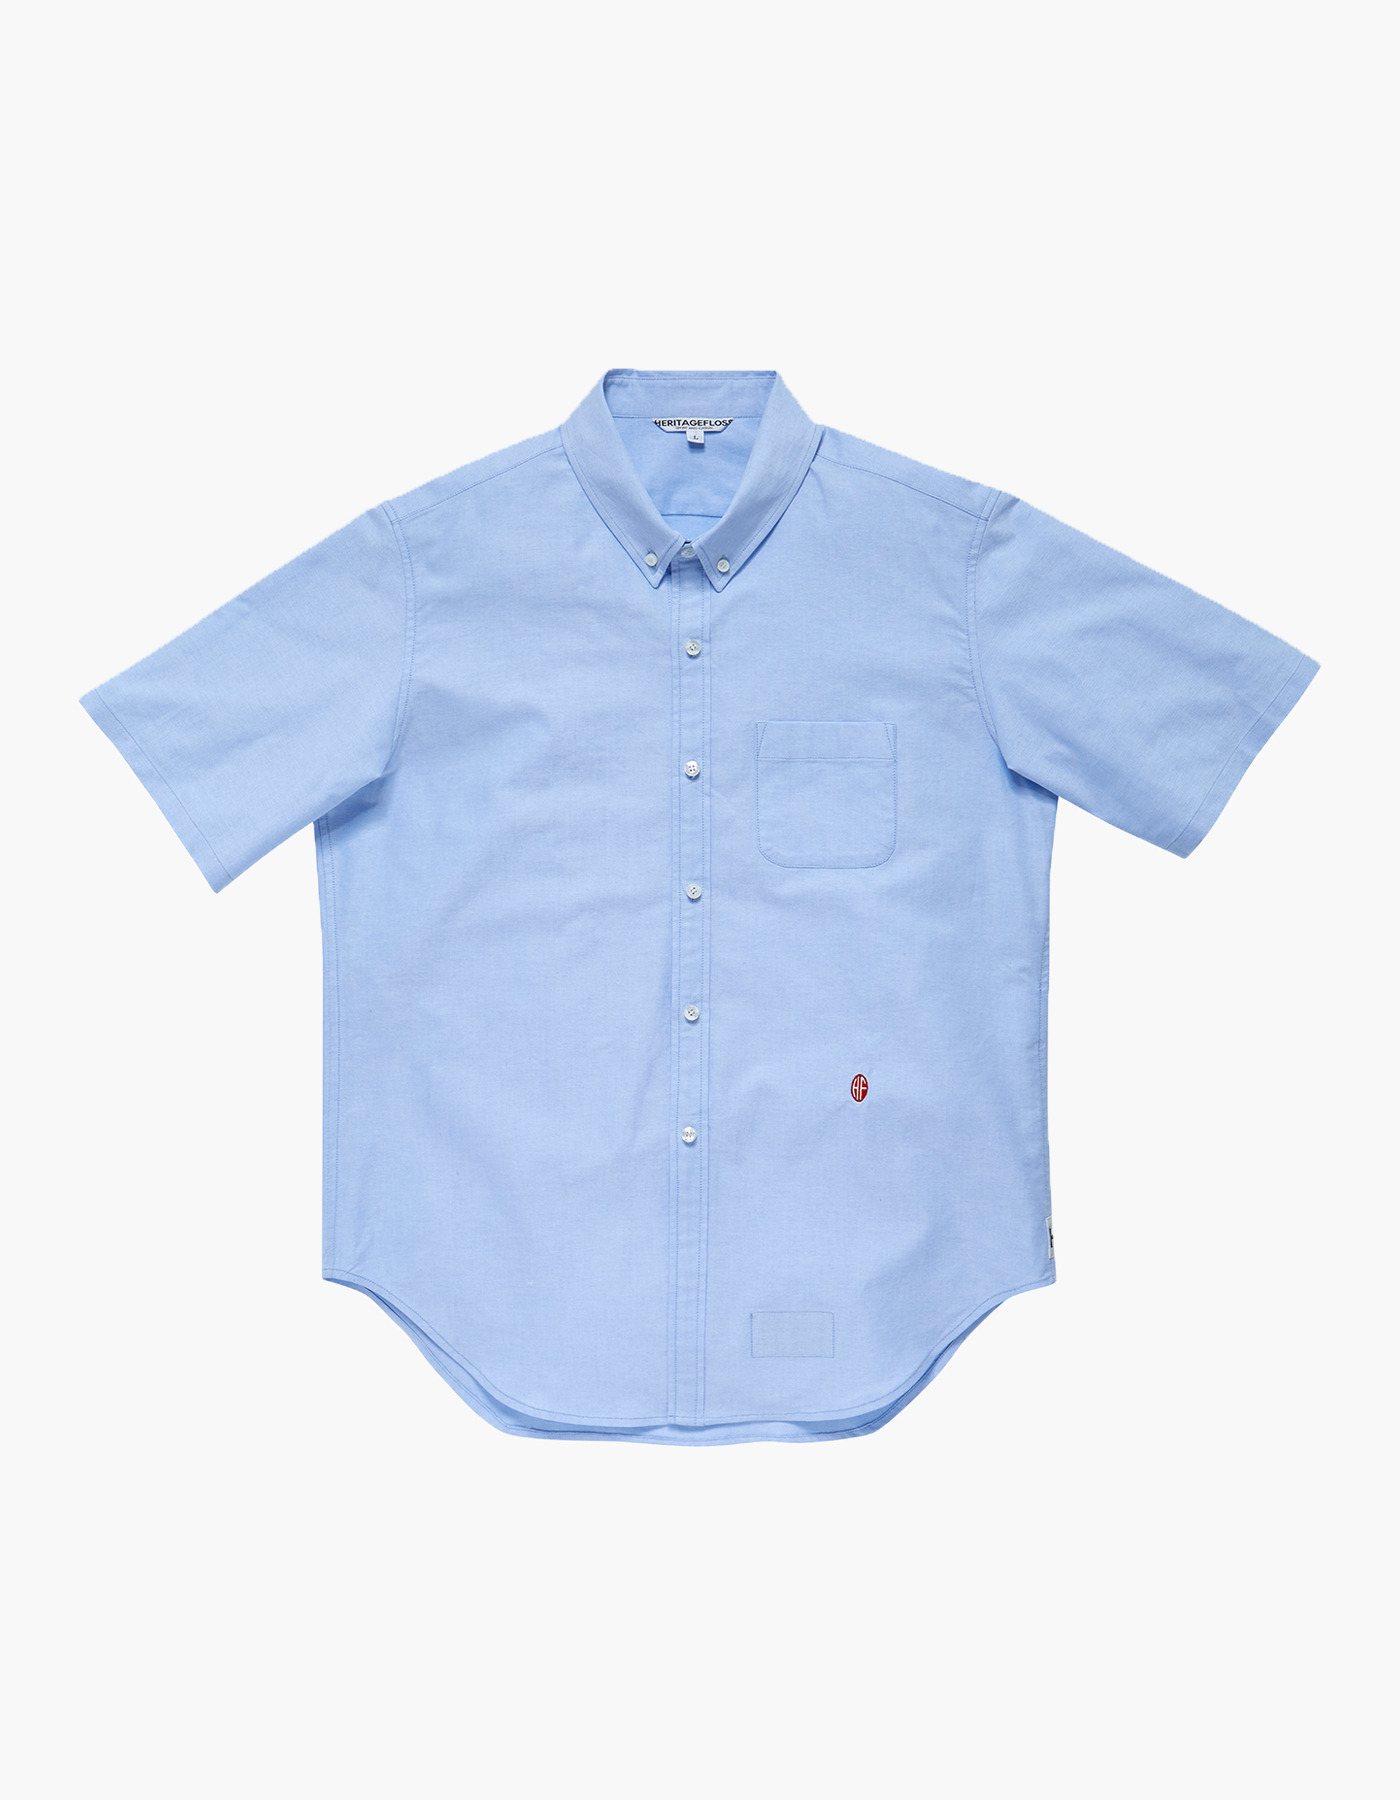 NON-WASHED OXFORD SPORT SHIRTS II / BLUE